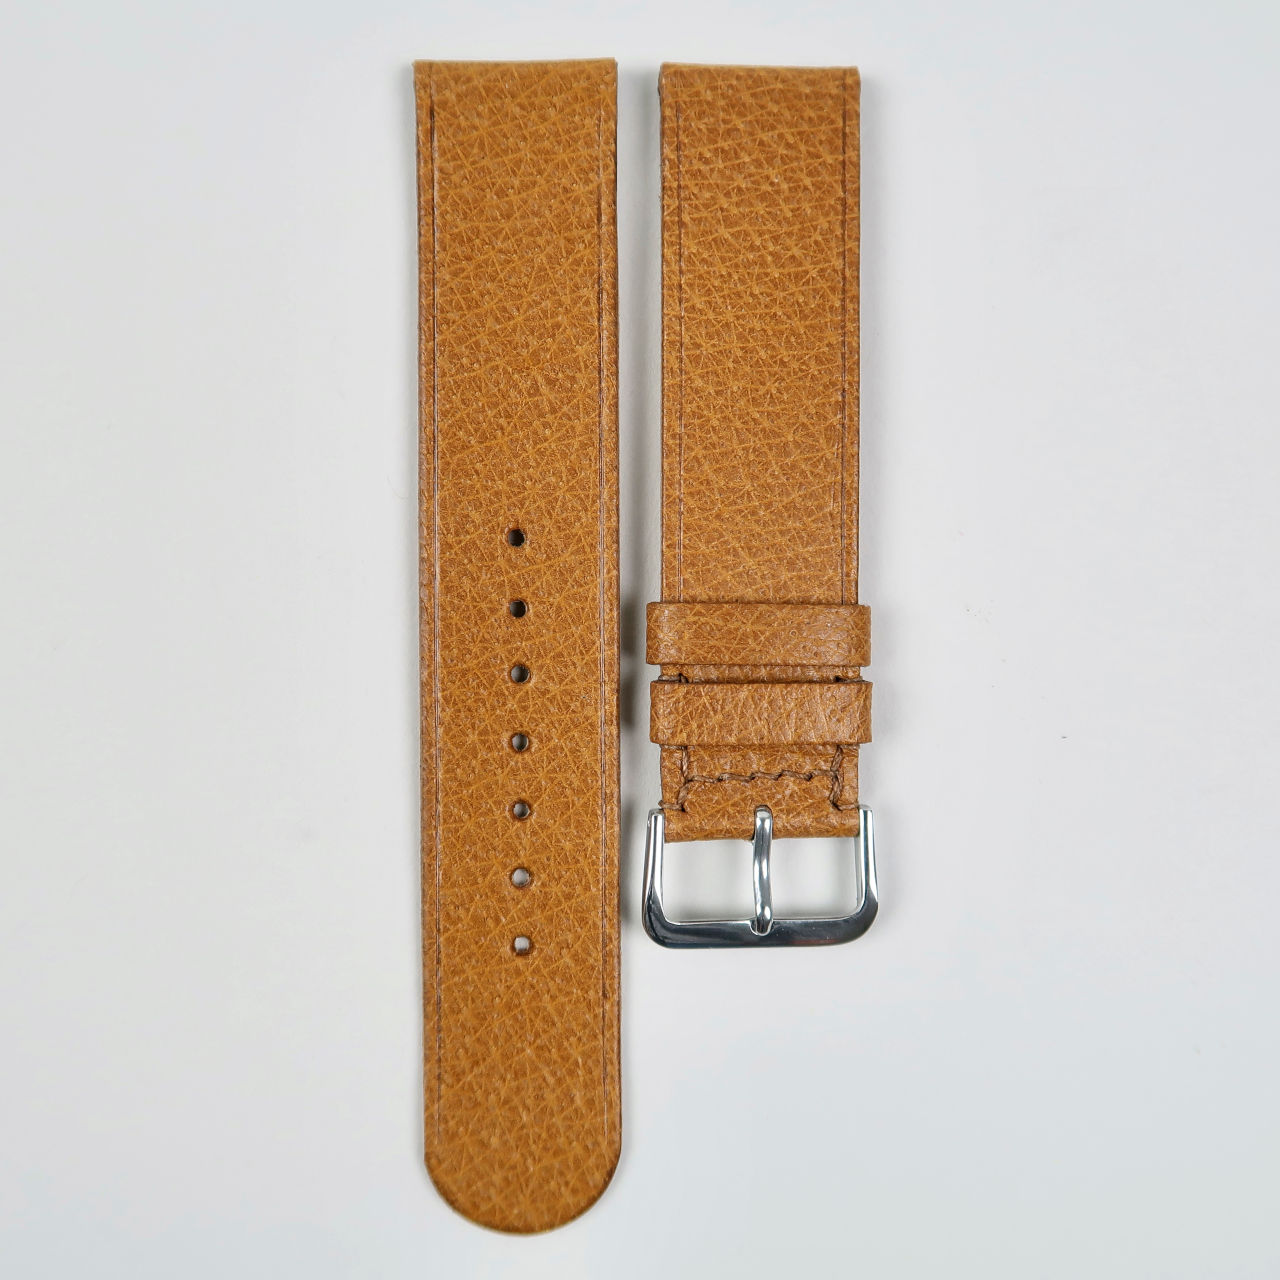 Christopher Clarke for Black Bough No.3 handmade pig skin leather watch strap